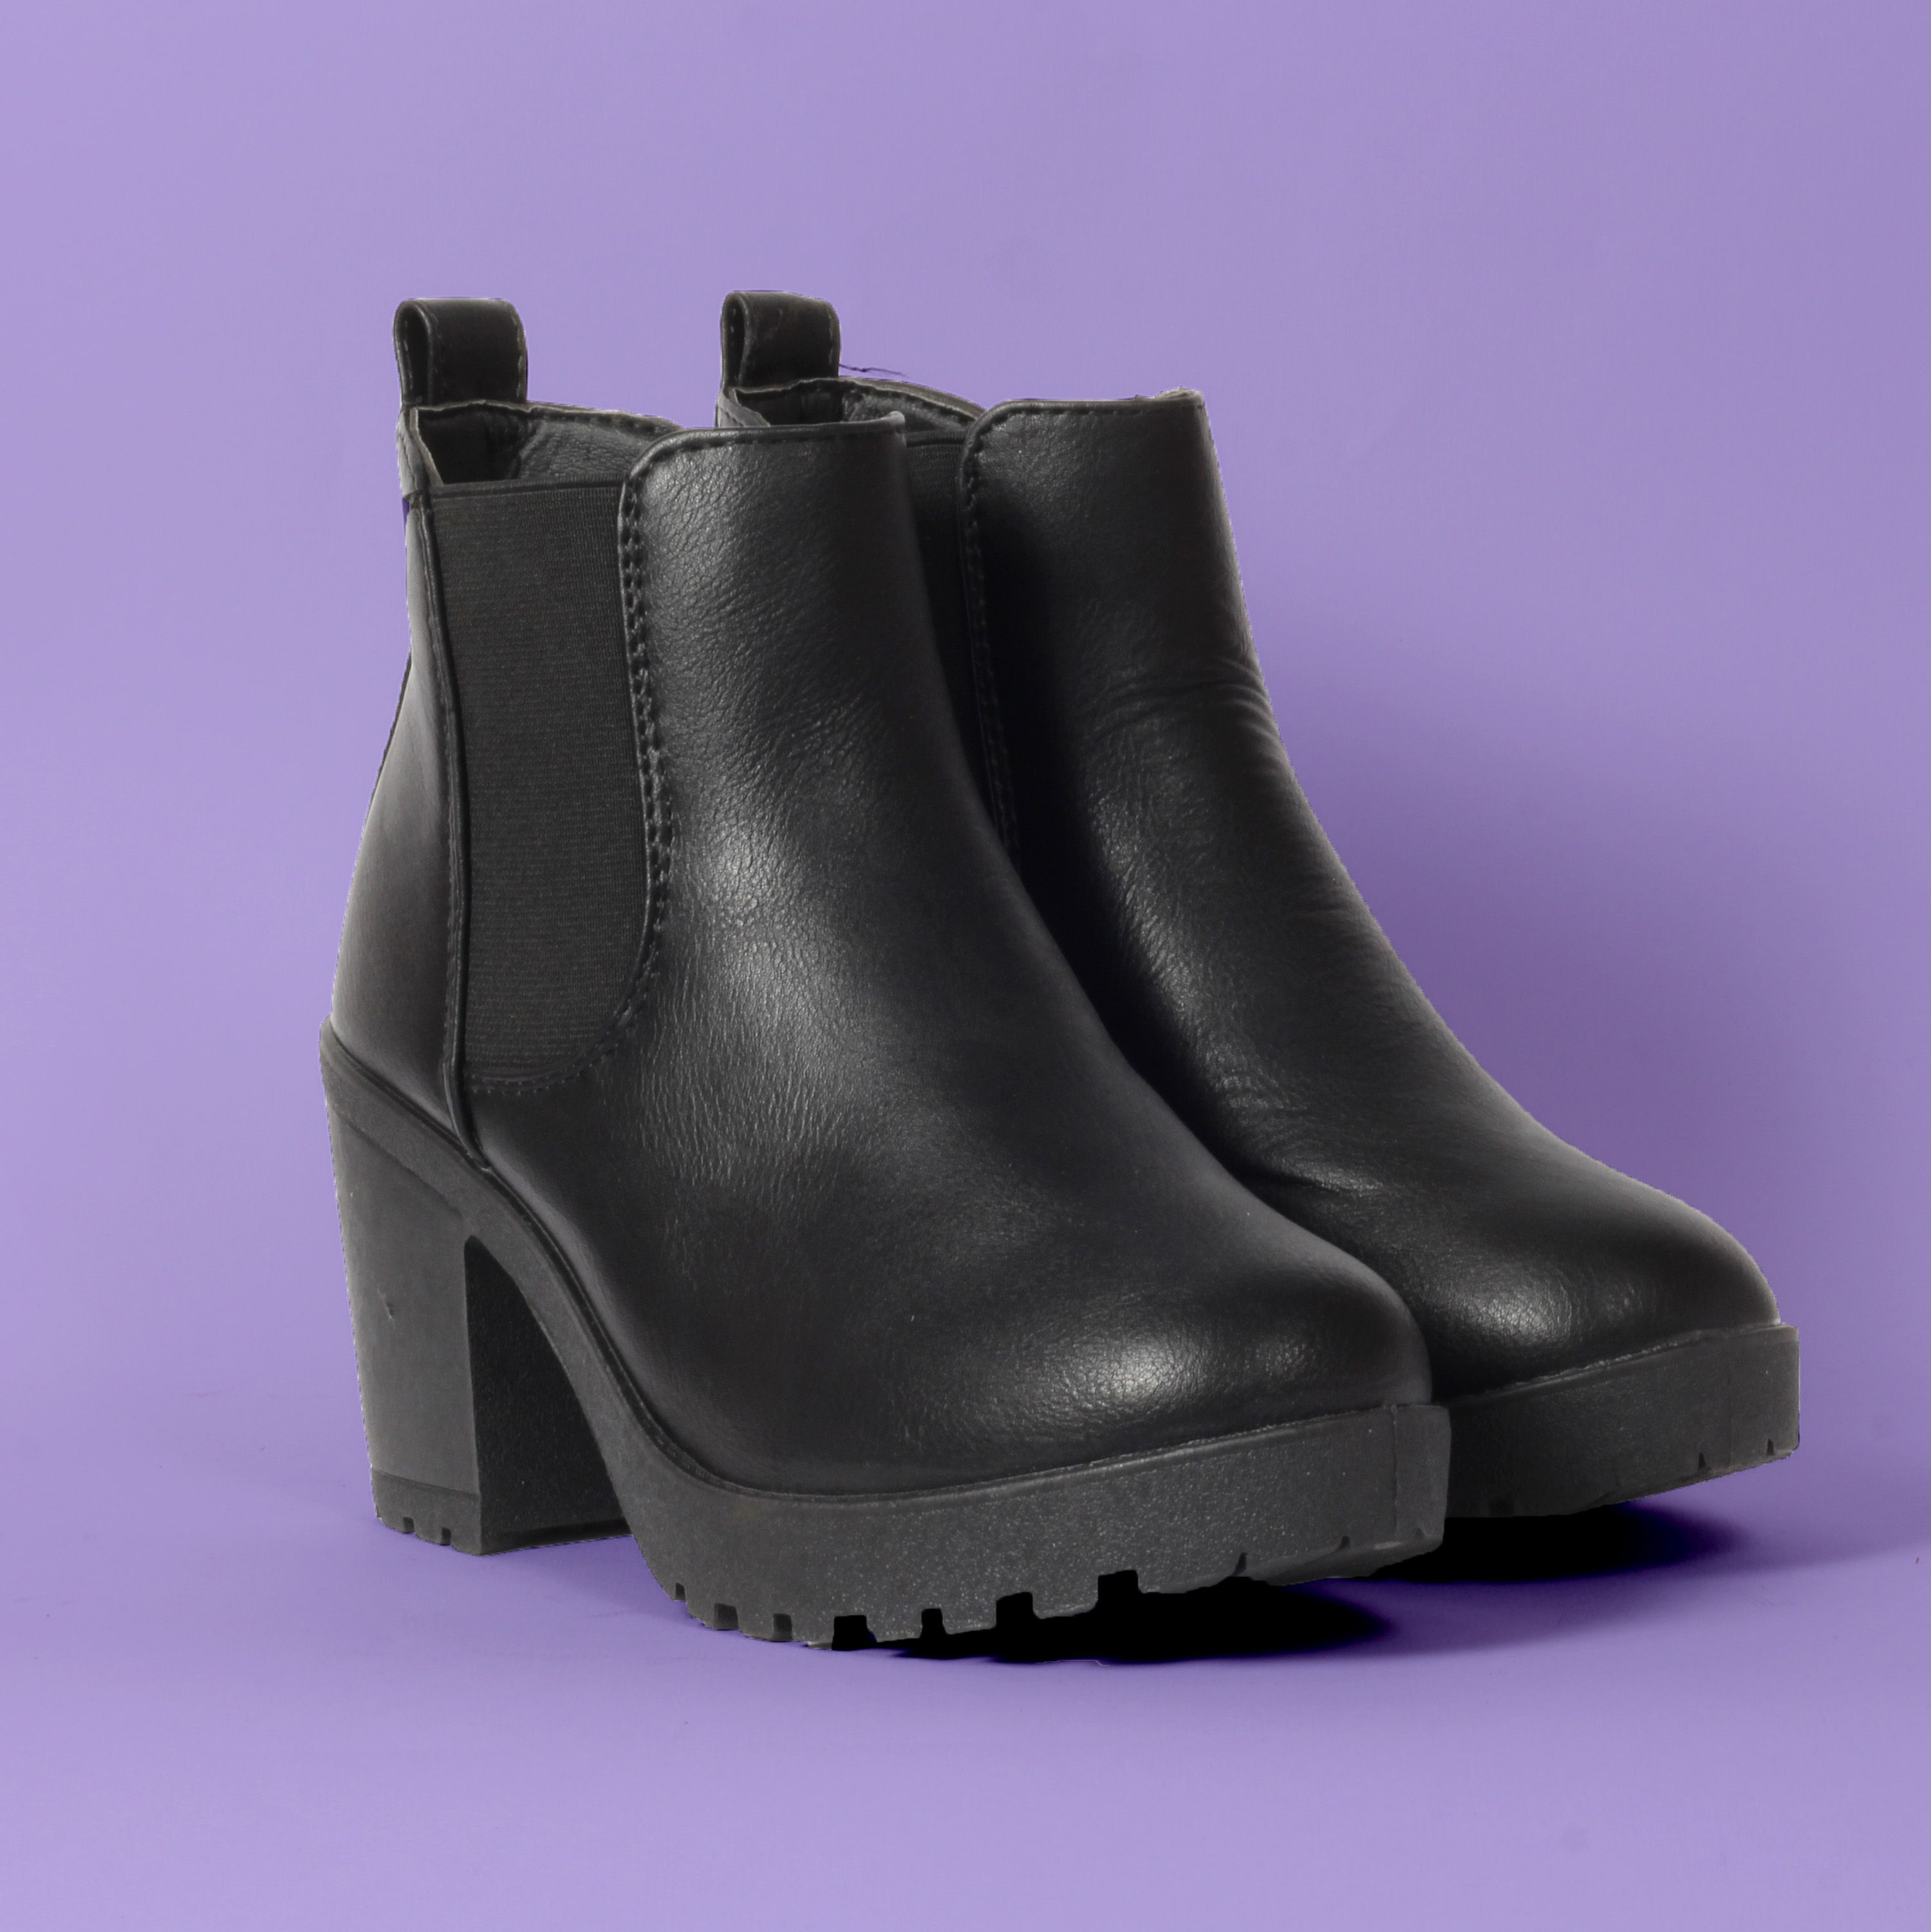 0ffabe78f BACK TO BASICS with these faux leather slip on boots perfect for  winter fall to